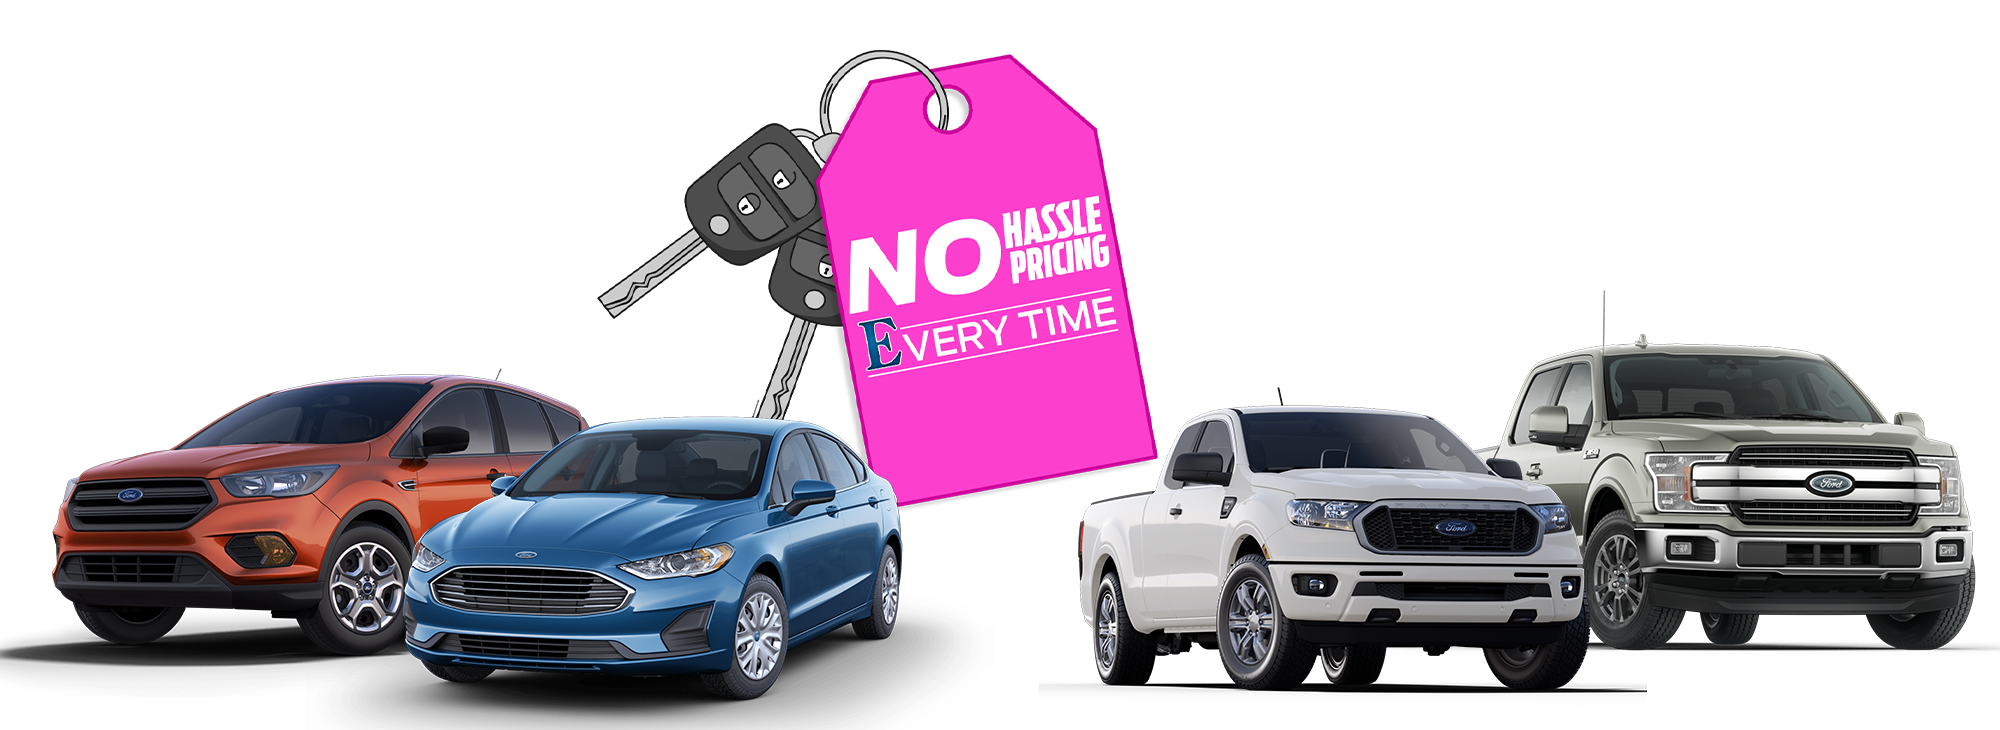 Ford Dealers Nj >> No Hassle Pricing Policy Echelon Ford Your Ford Dealer In Nj